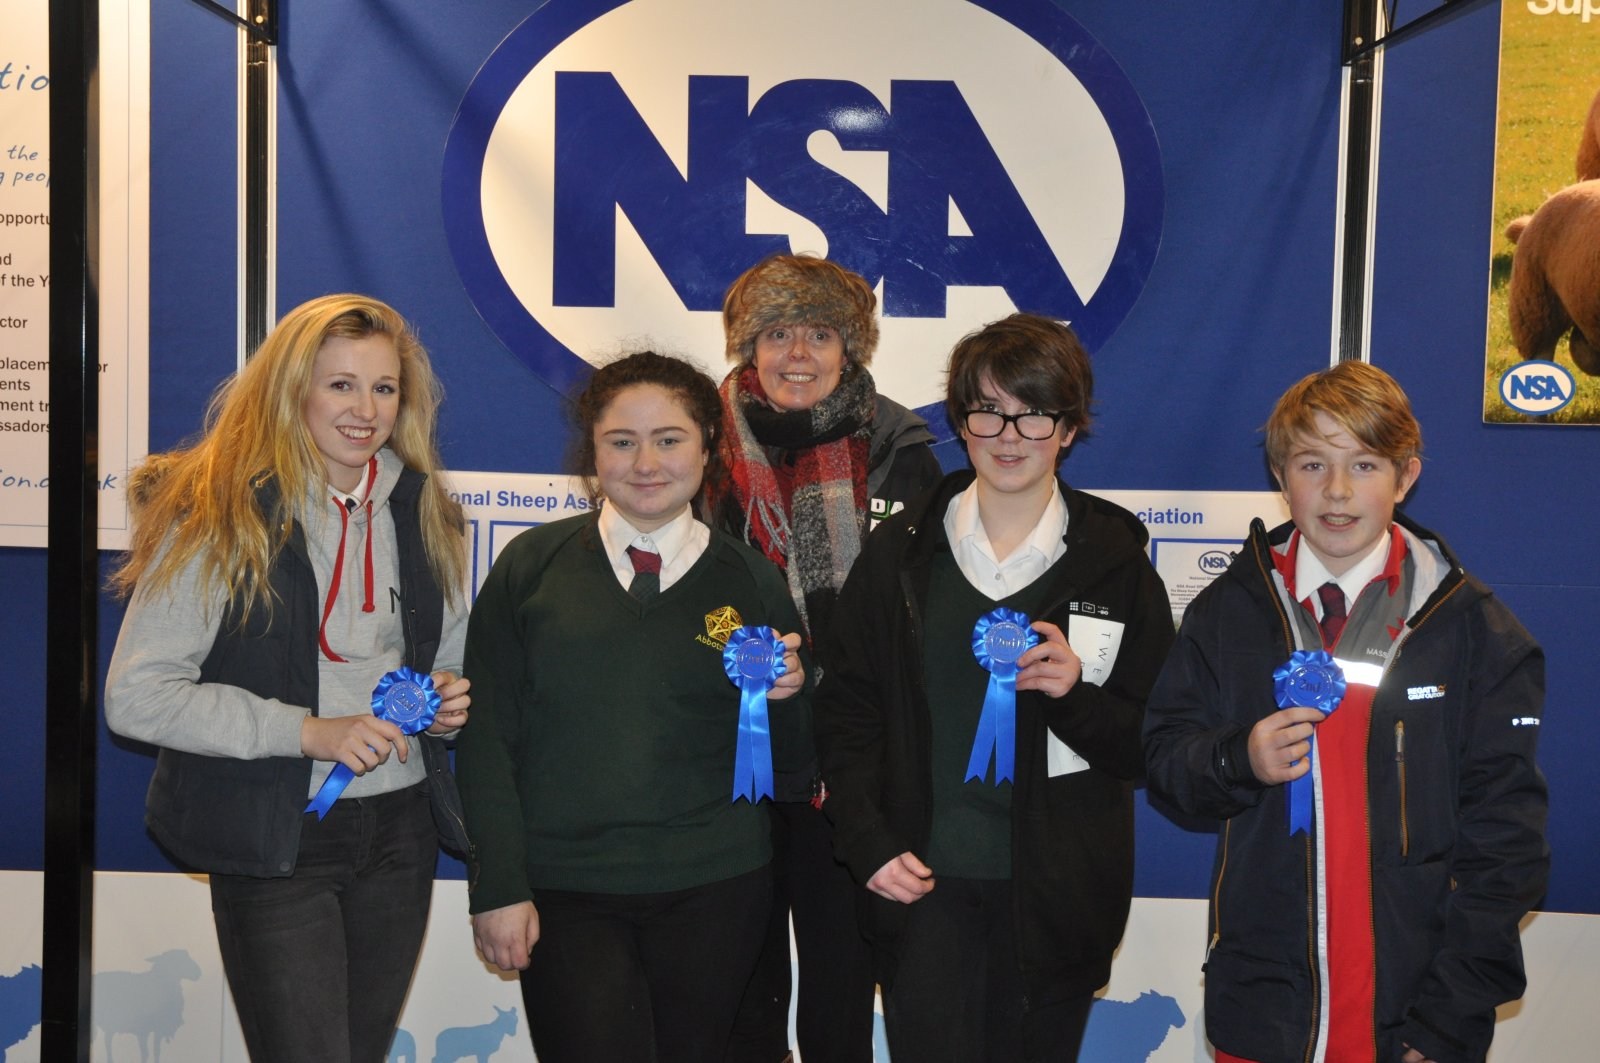 2nd inter-schools NSA Next Generation Shepherd Competition, Abbotsholme School